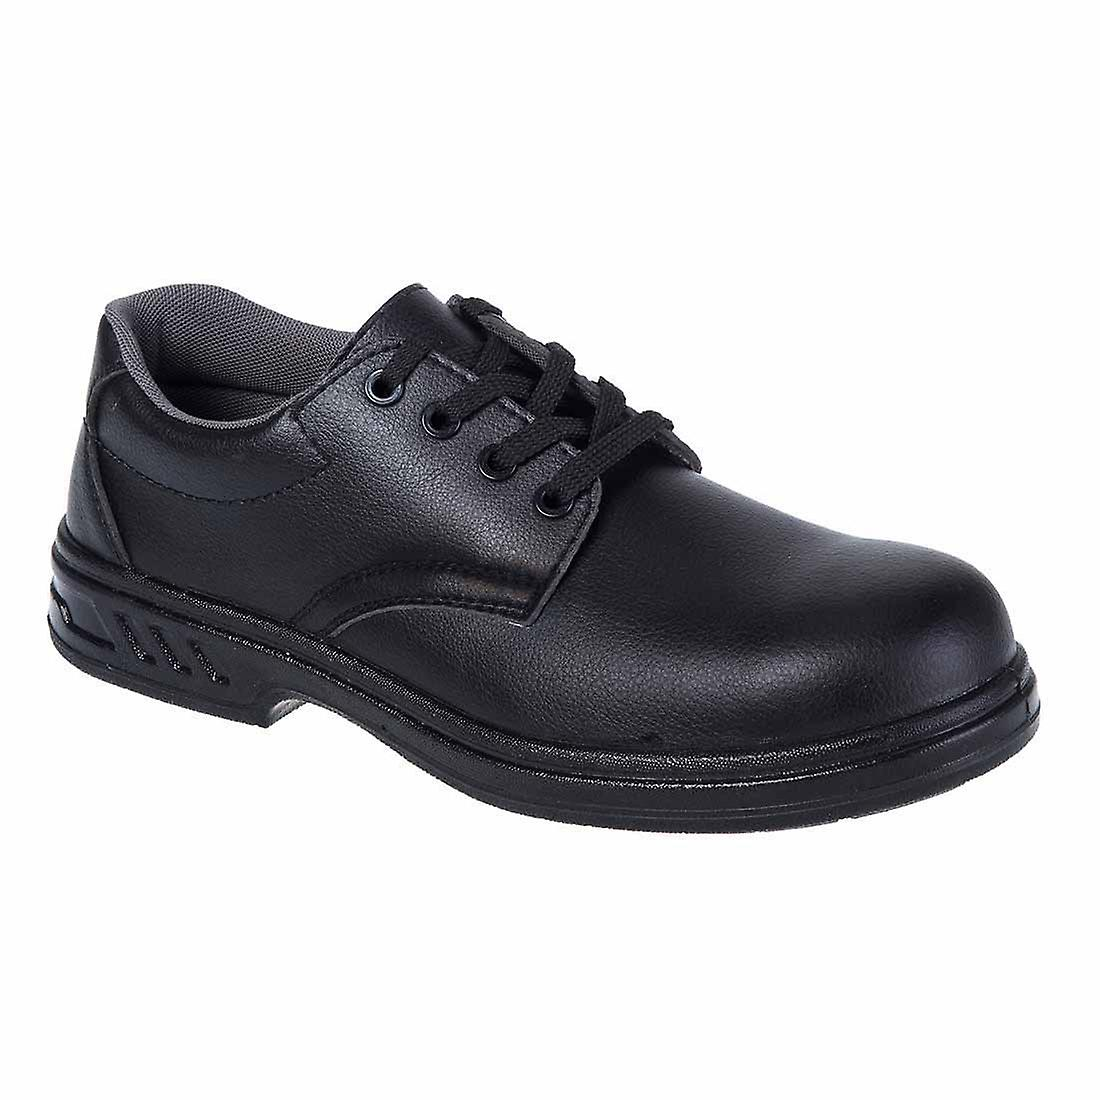 Laced S2 Shoe Steelite Portwest Workwear Safety 8qS4AHO